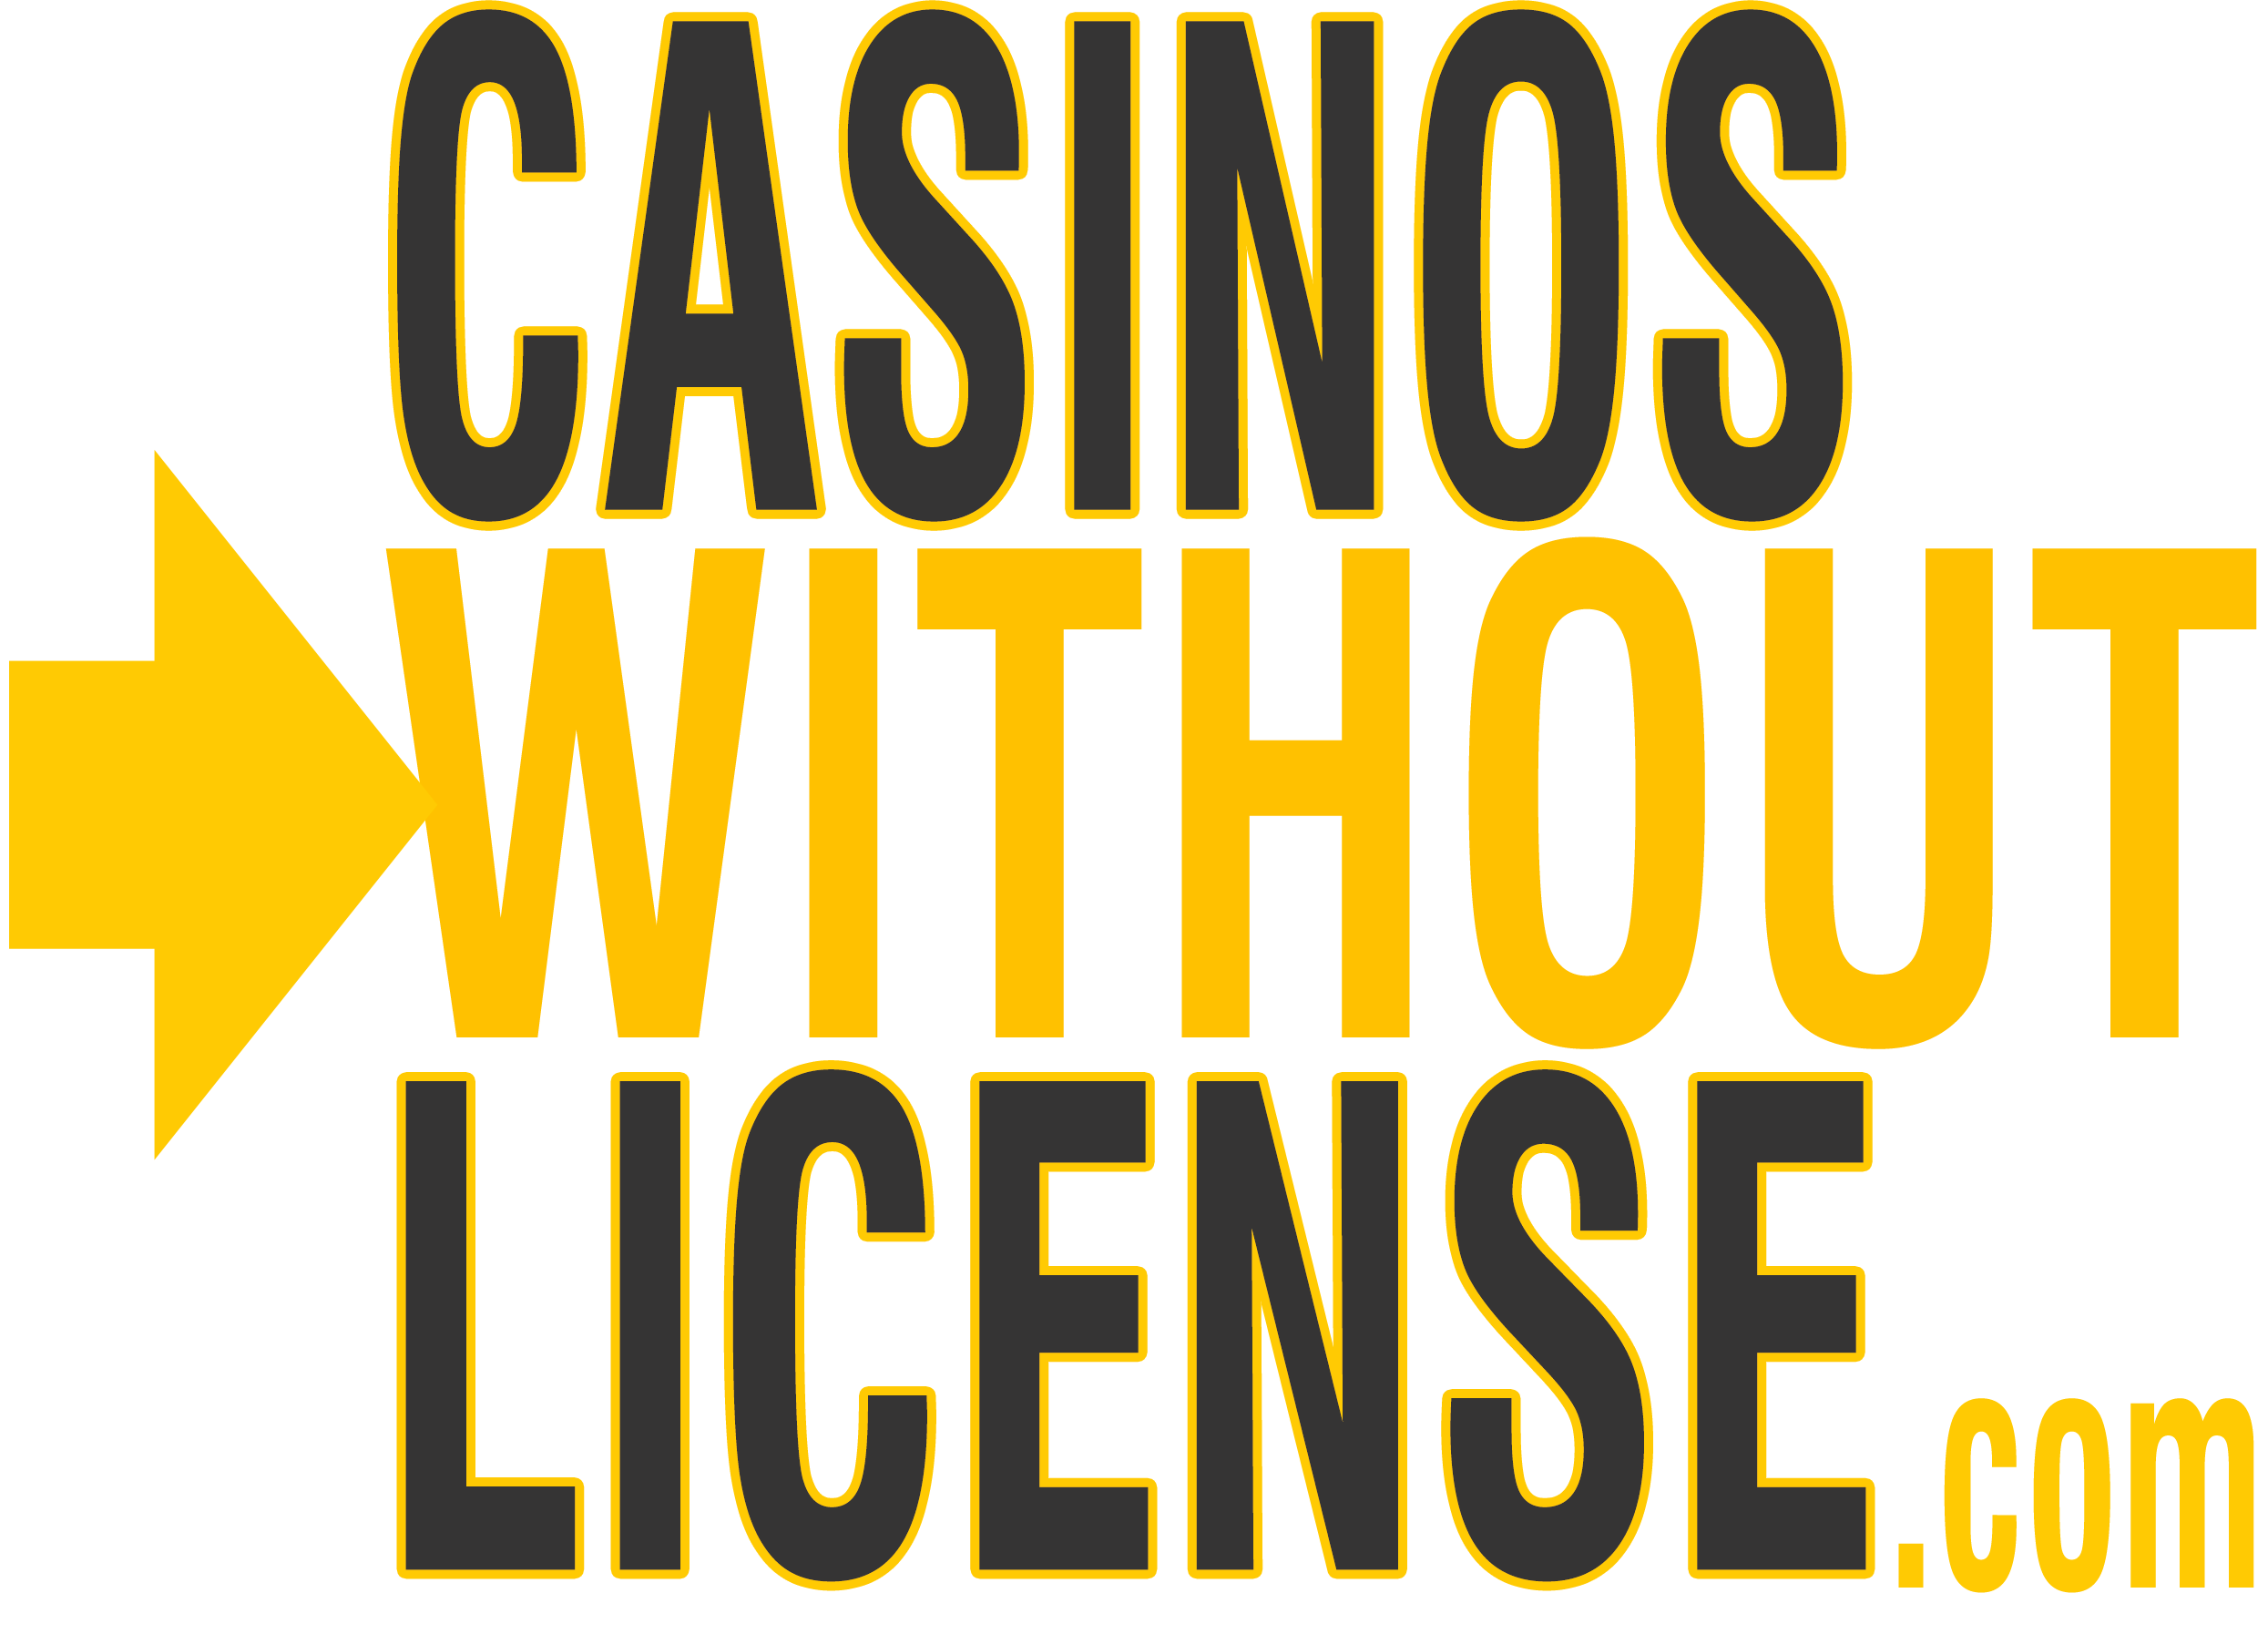 Casinos Without License